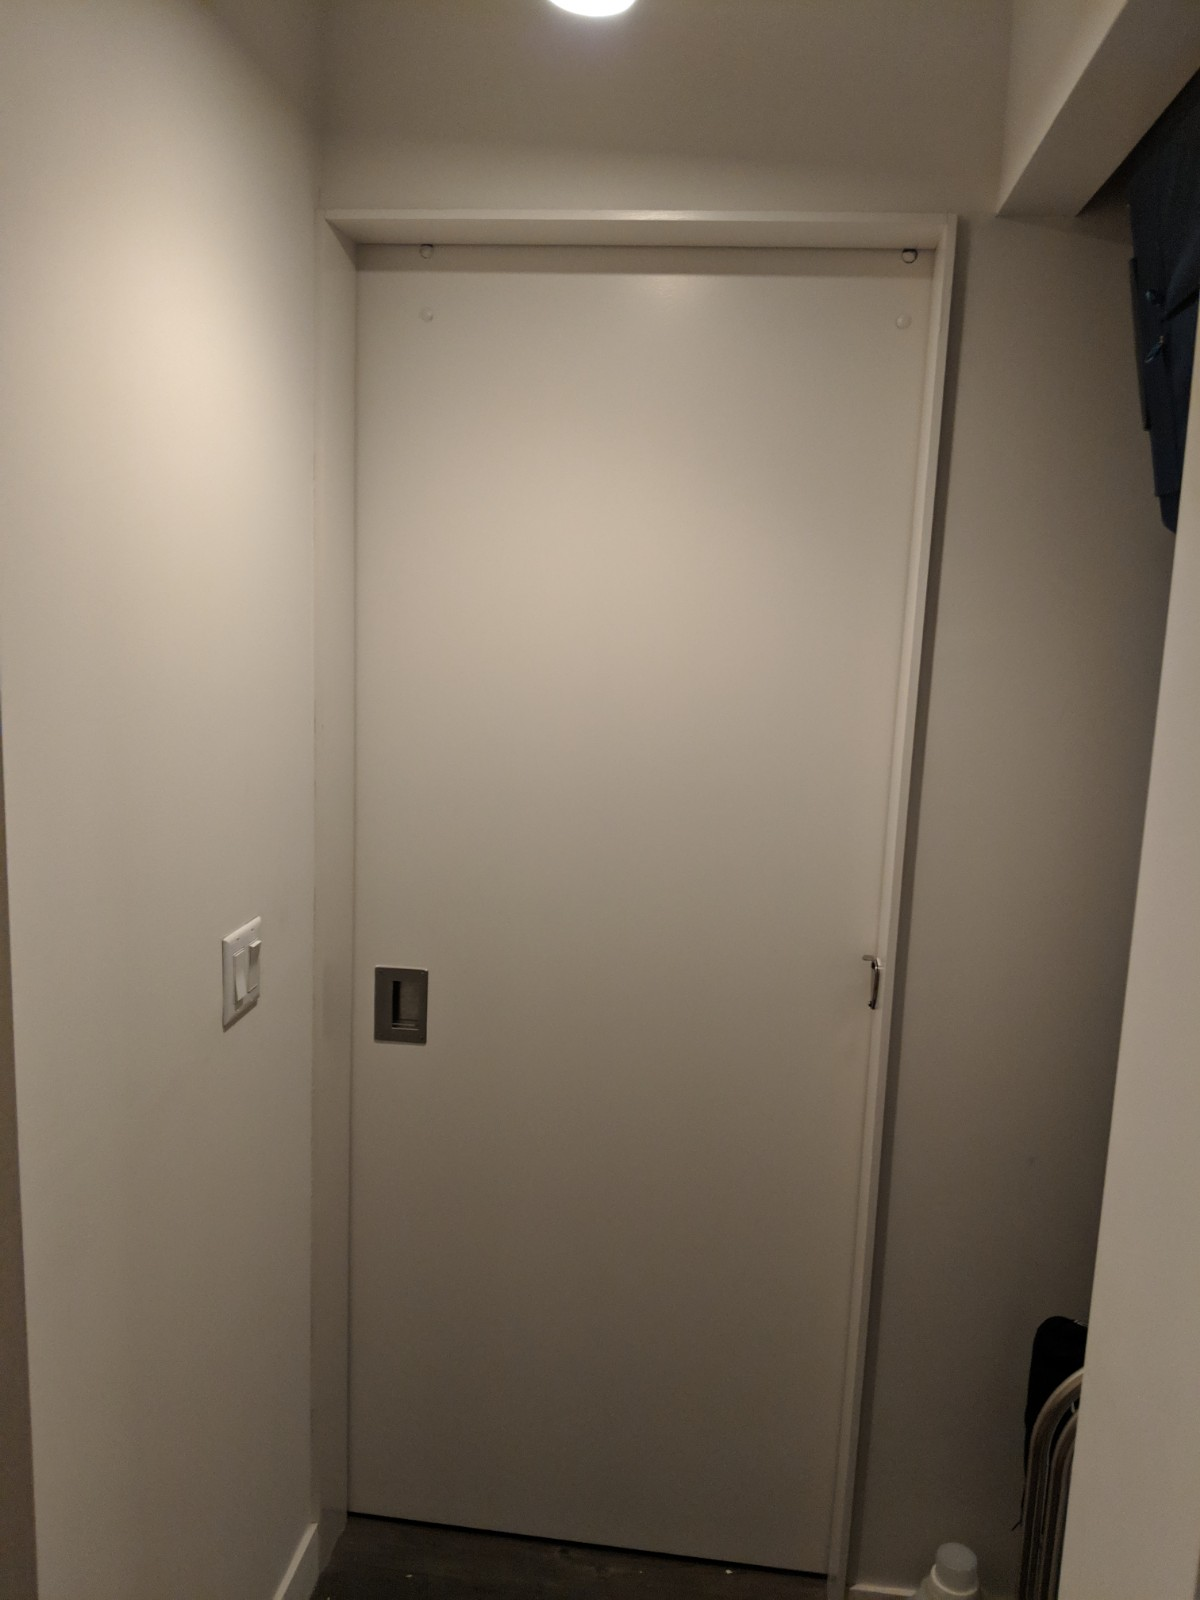 Any experience with soundproof curtains?-img_20190224_153314.jpg